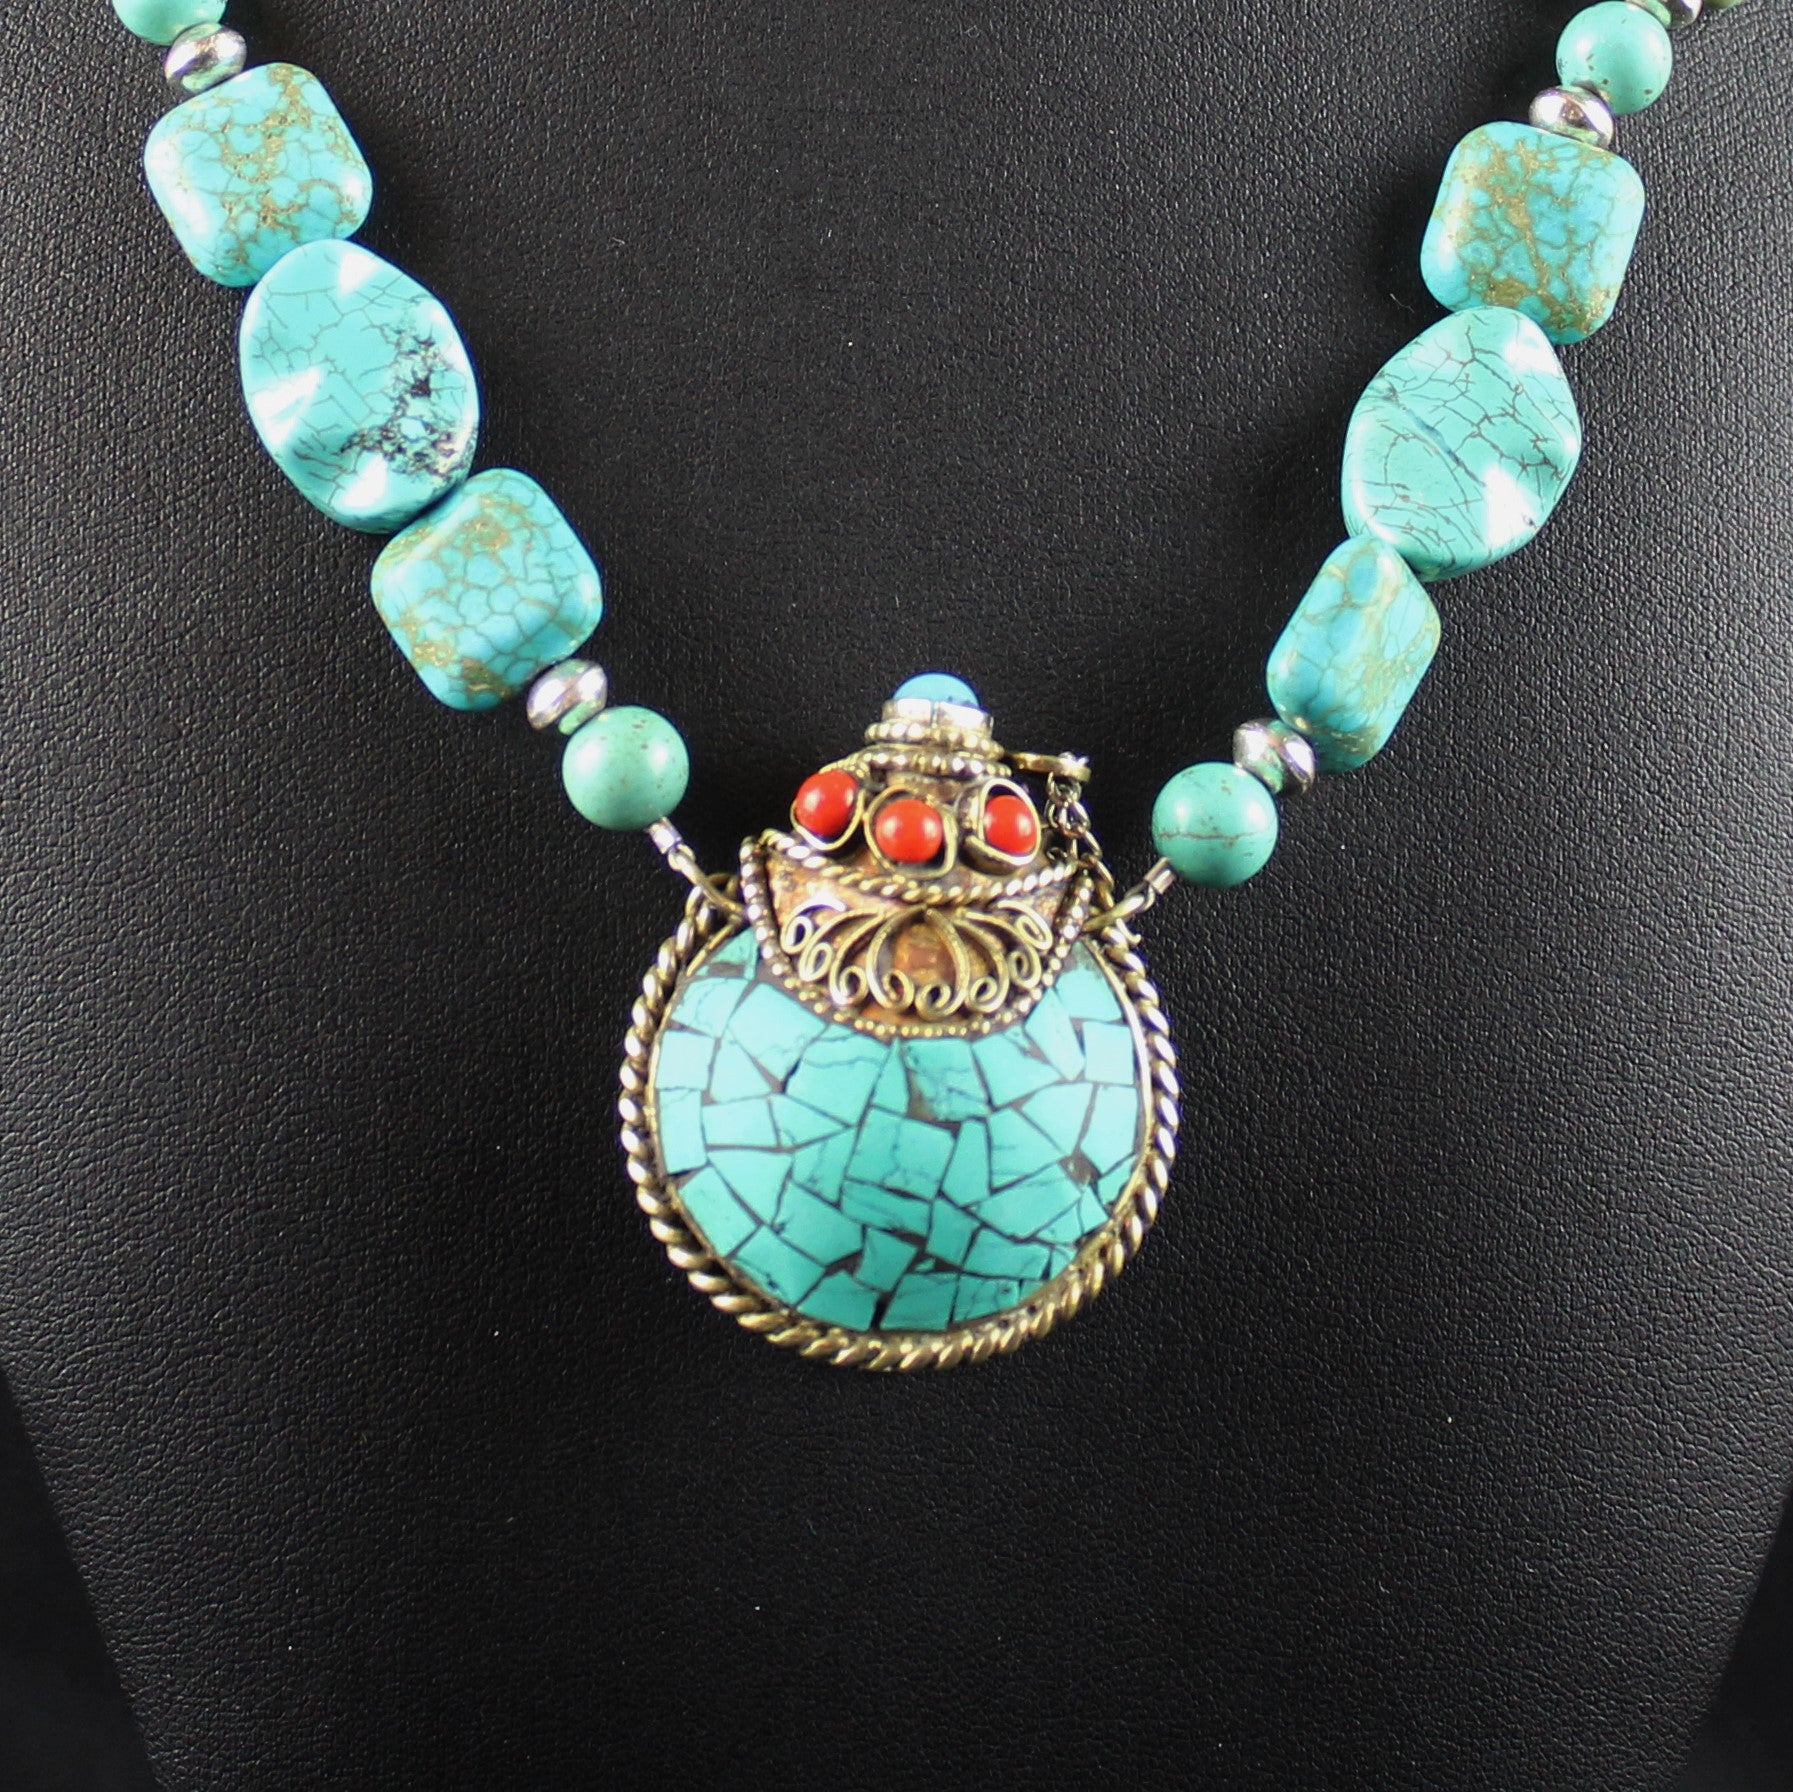 Susan M - Turquoise Necklace with Snuff Bottle